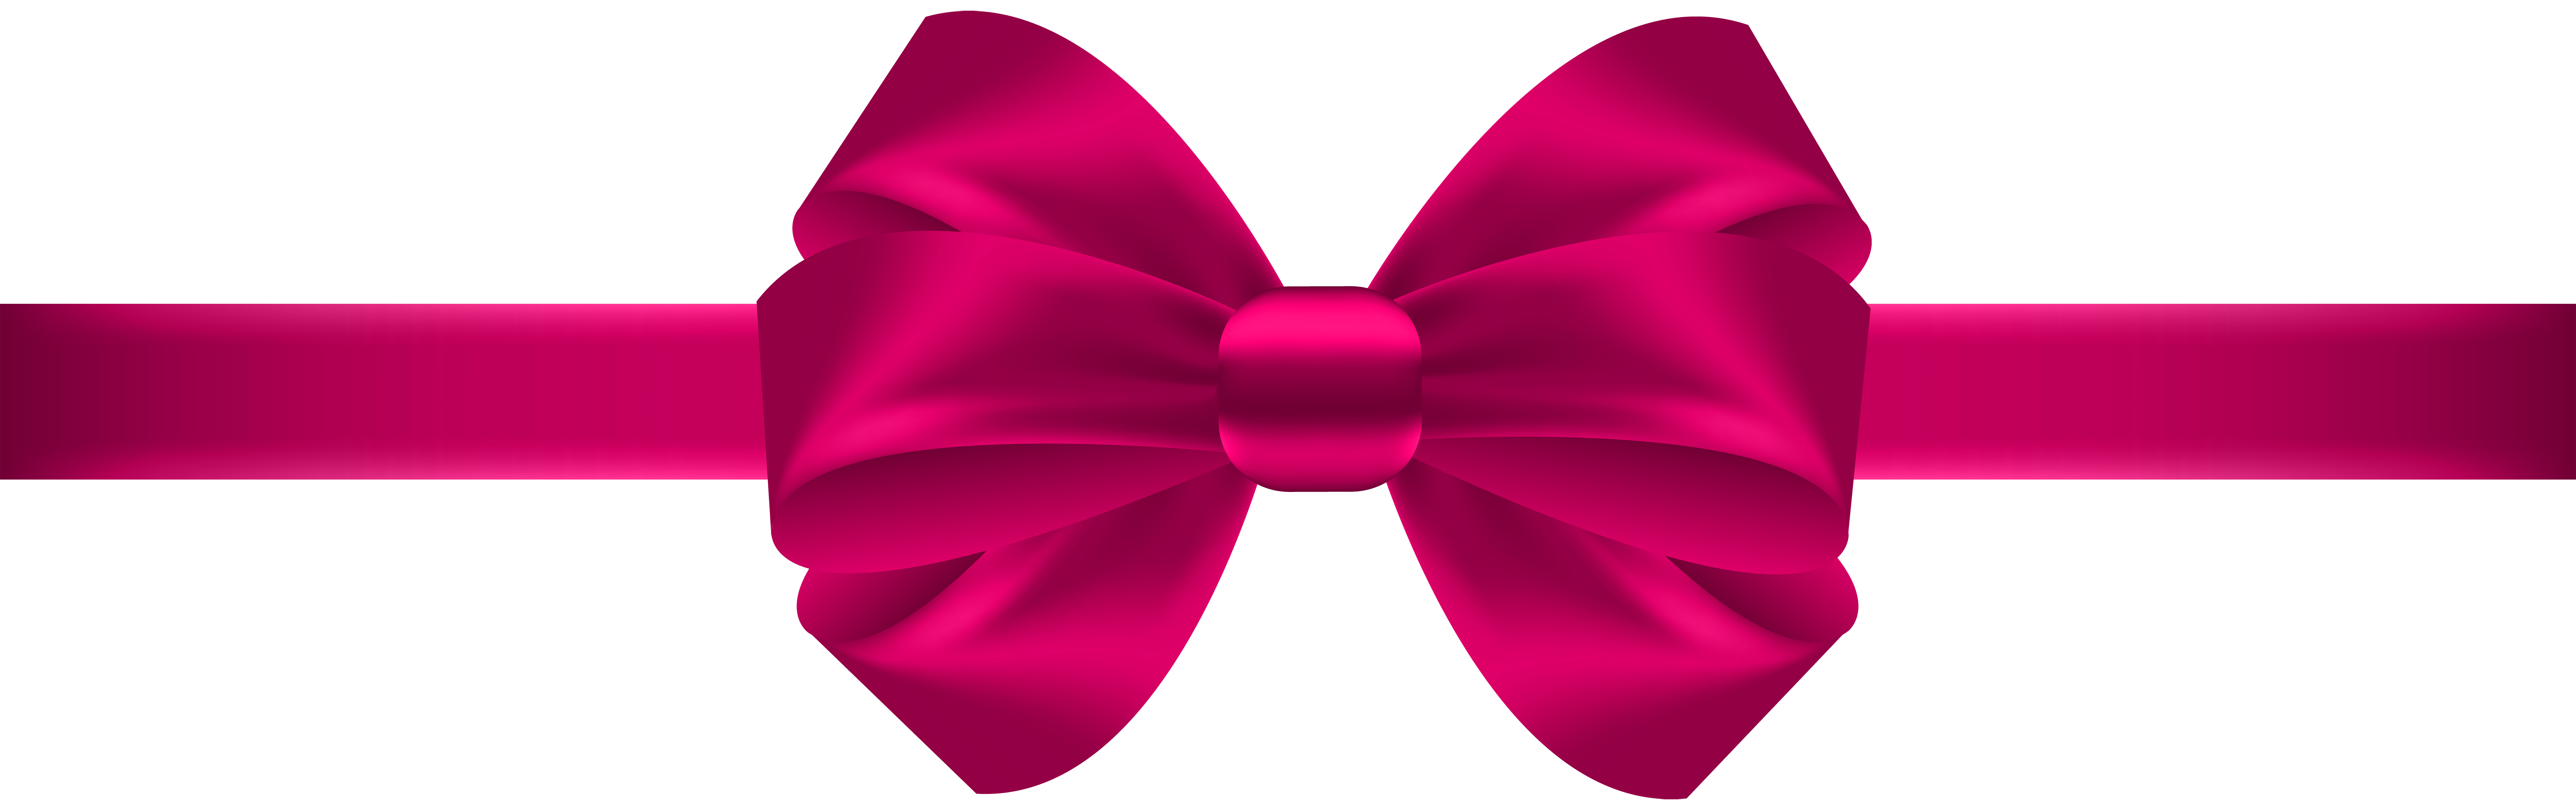 Bow transparent png clip. Hair clipart pink